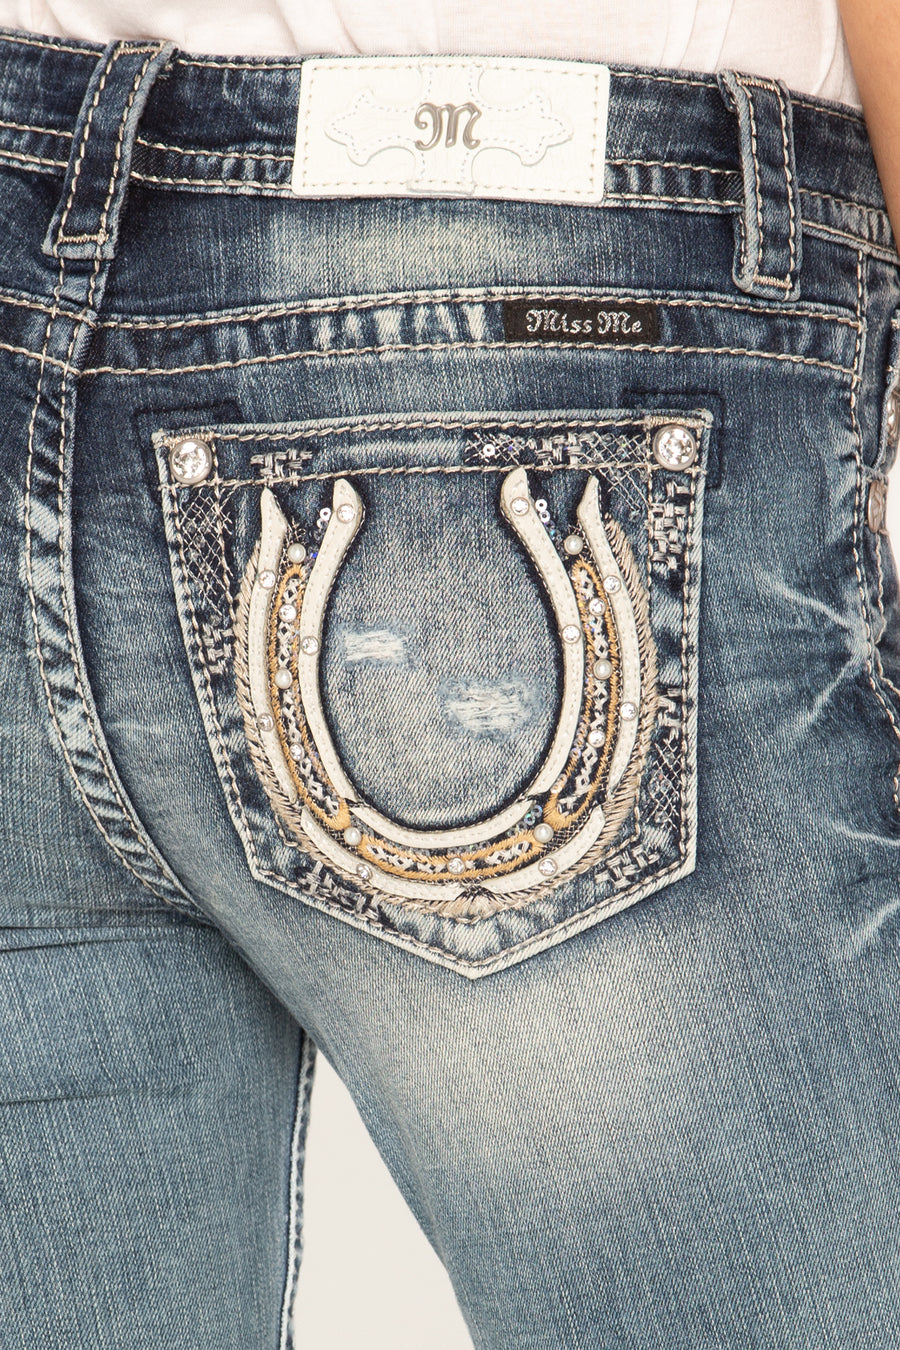 LUCKY GIRL BOOTCUT JEANS